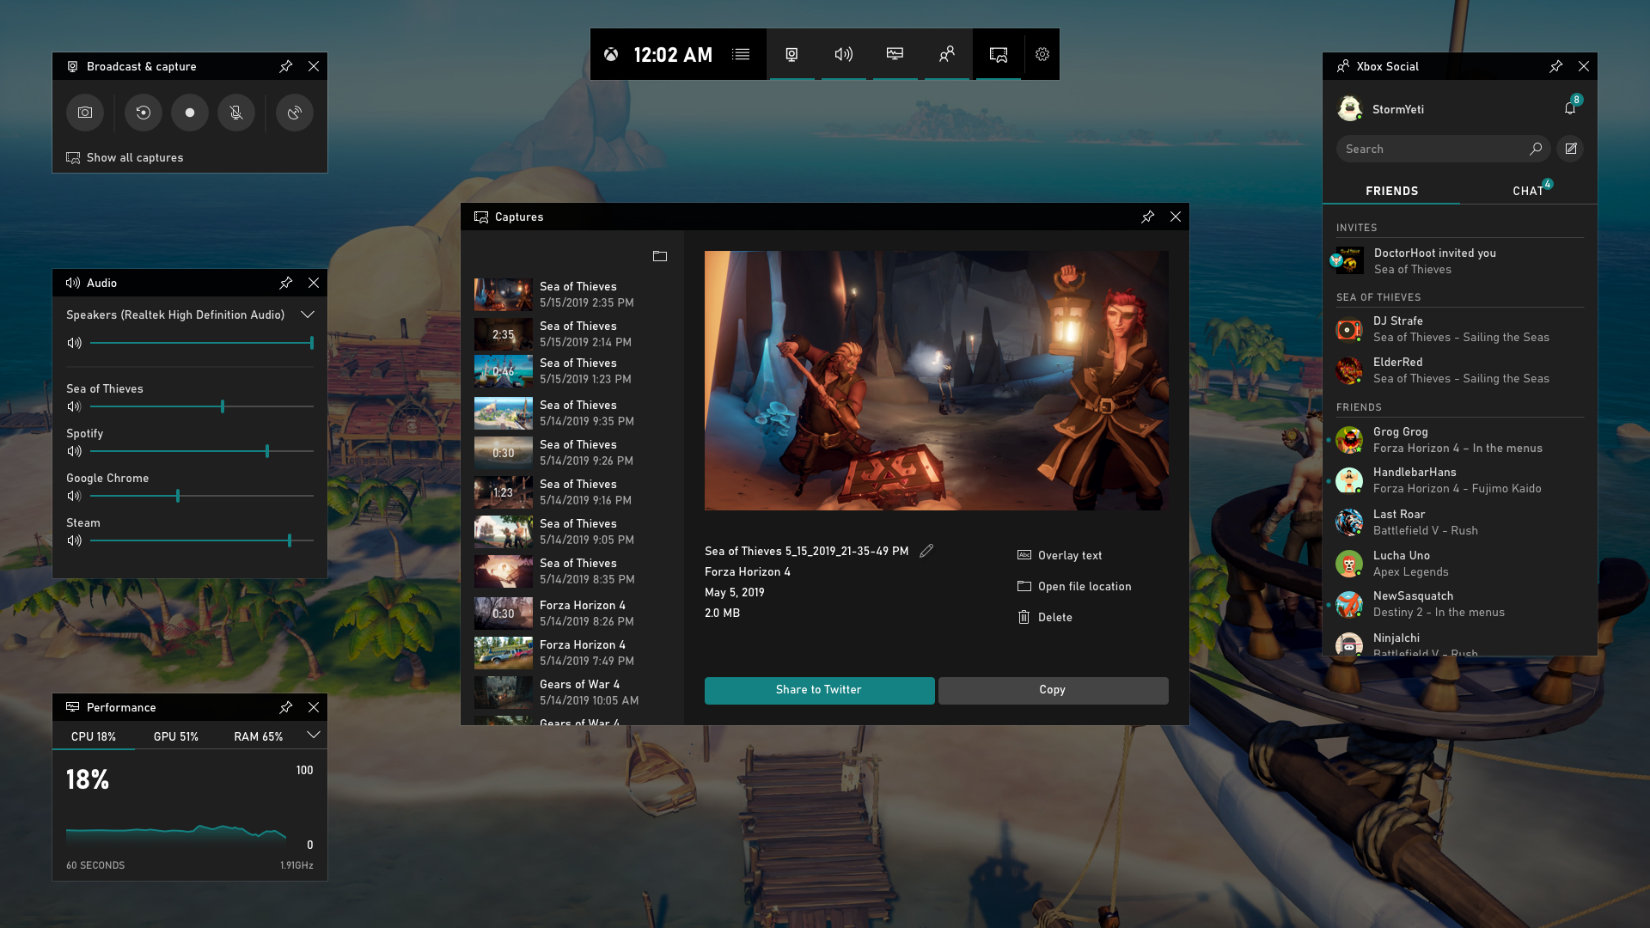 Windows 10's New Game Bar Is Now Available - Thurrott.com